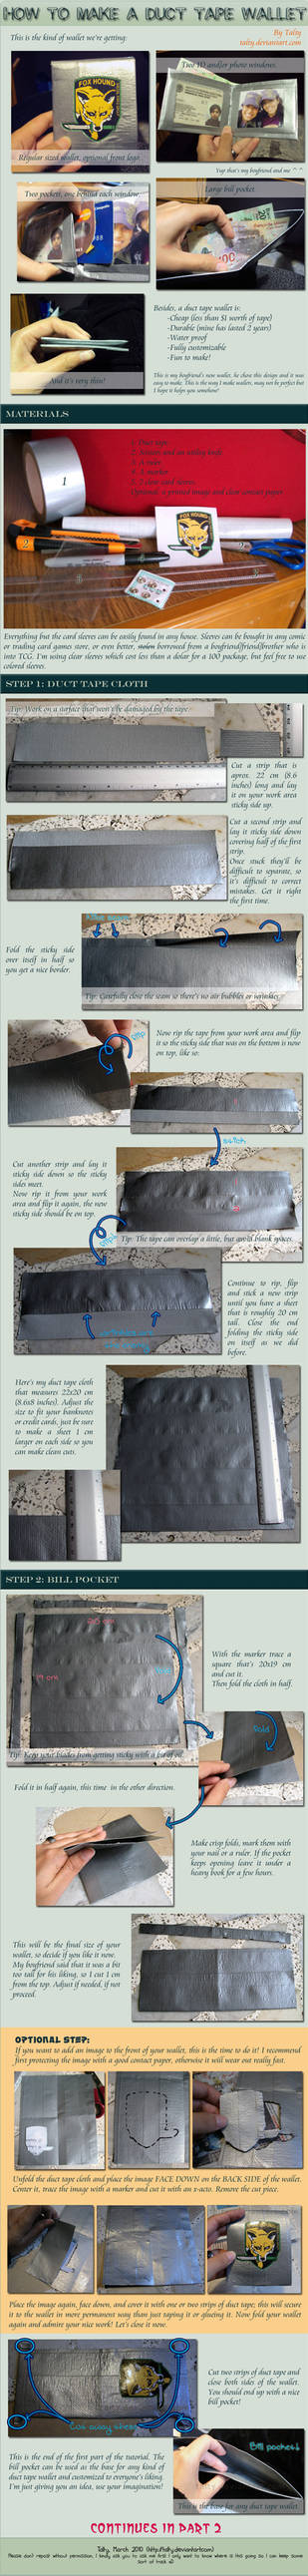 Duct Tape Wallet Part 1